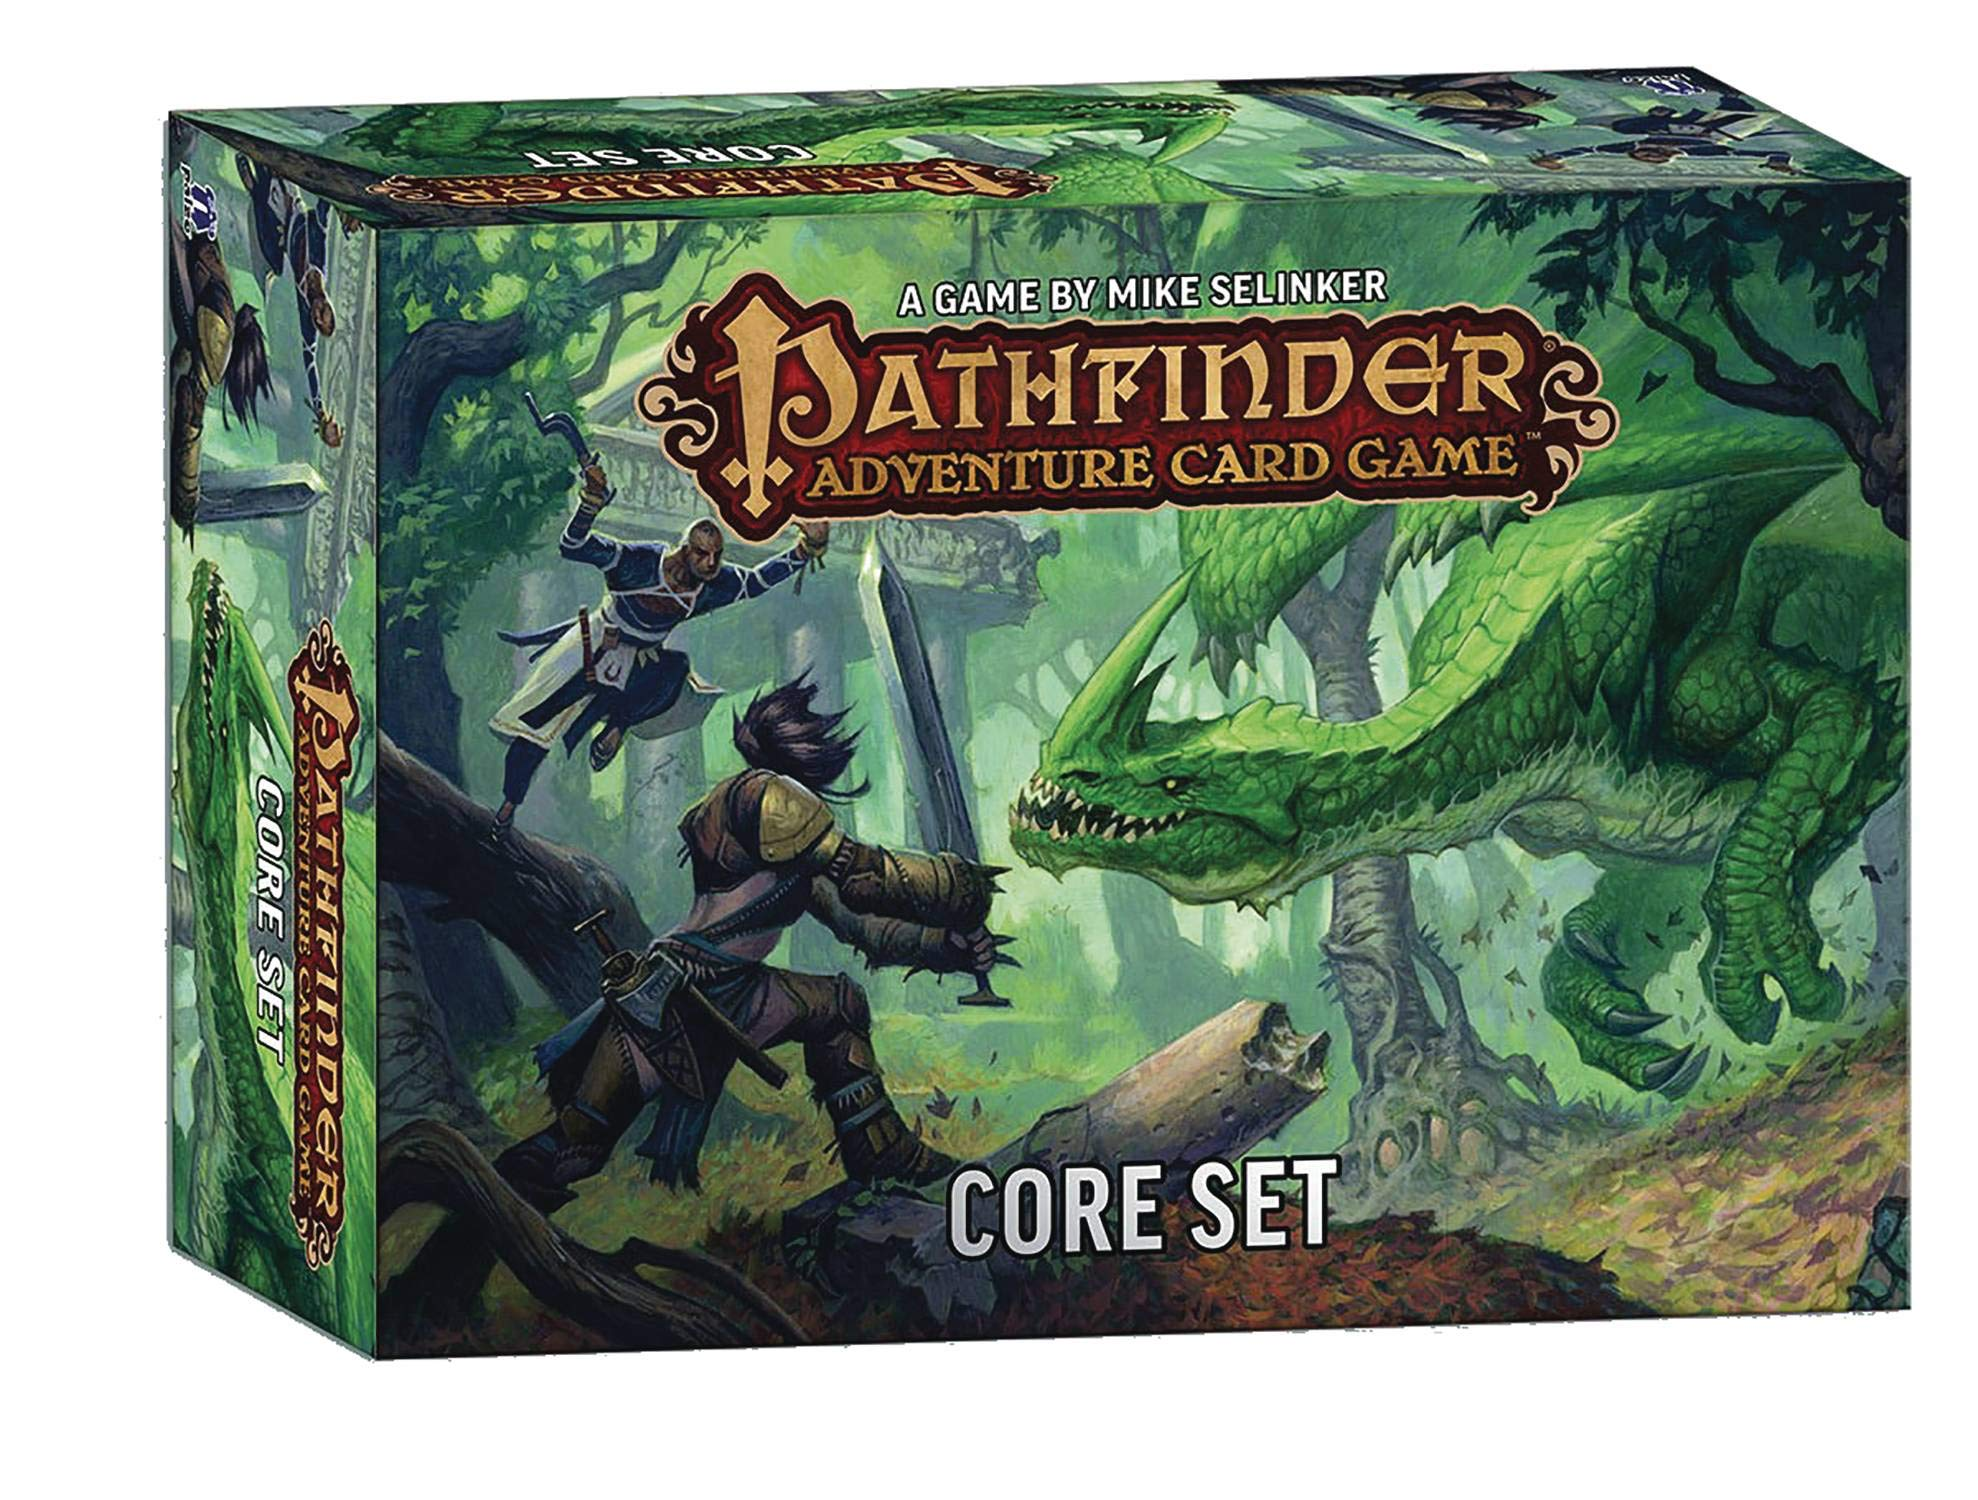 Pathfinder Adventure Card Game: Core Set by Alliance Game Distributors